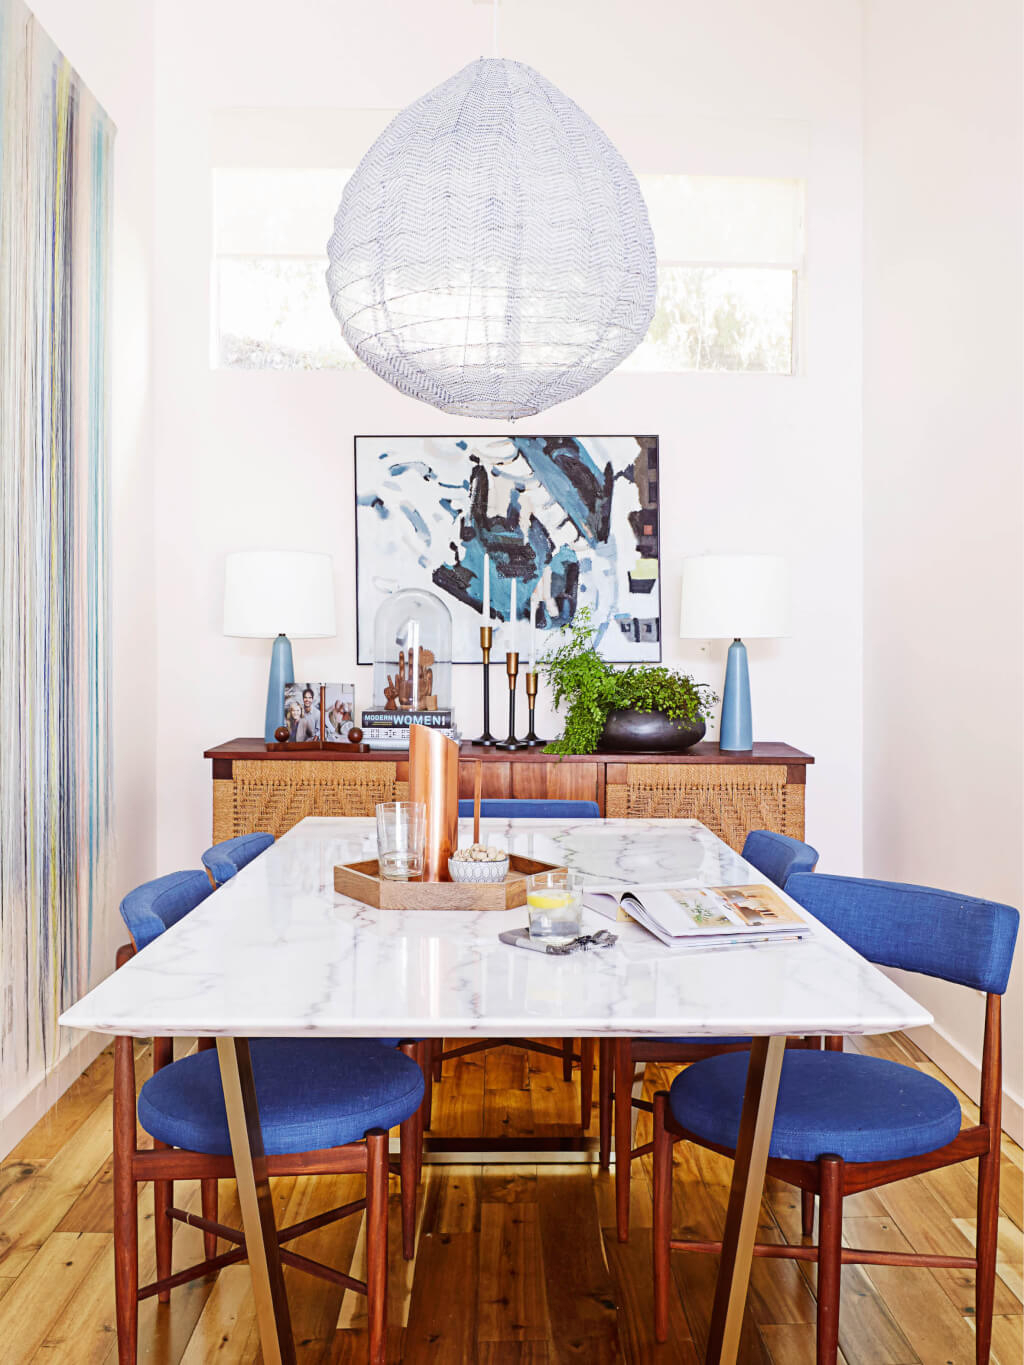 A Roundup Of 126 Dining Tables For Every Style And Space Intended For Current Linden Round Pedestal Dining Tables (View 13 of 25)